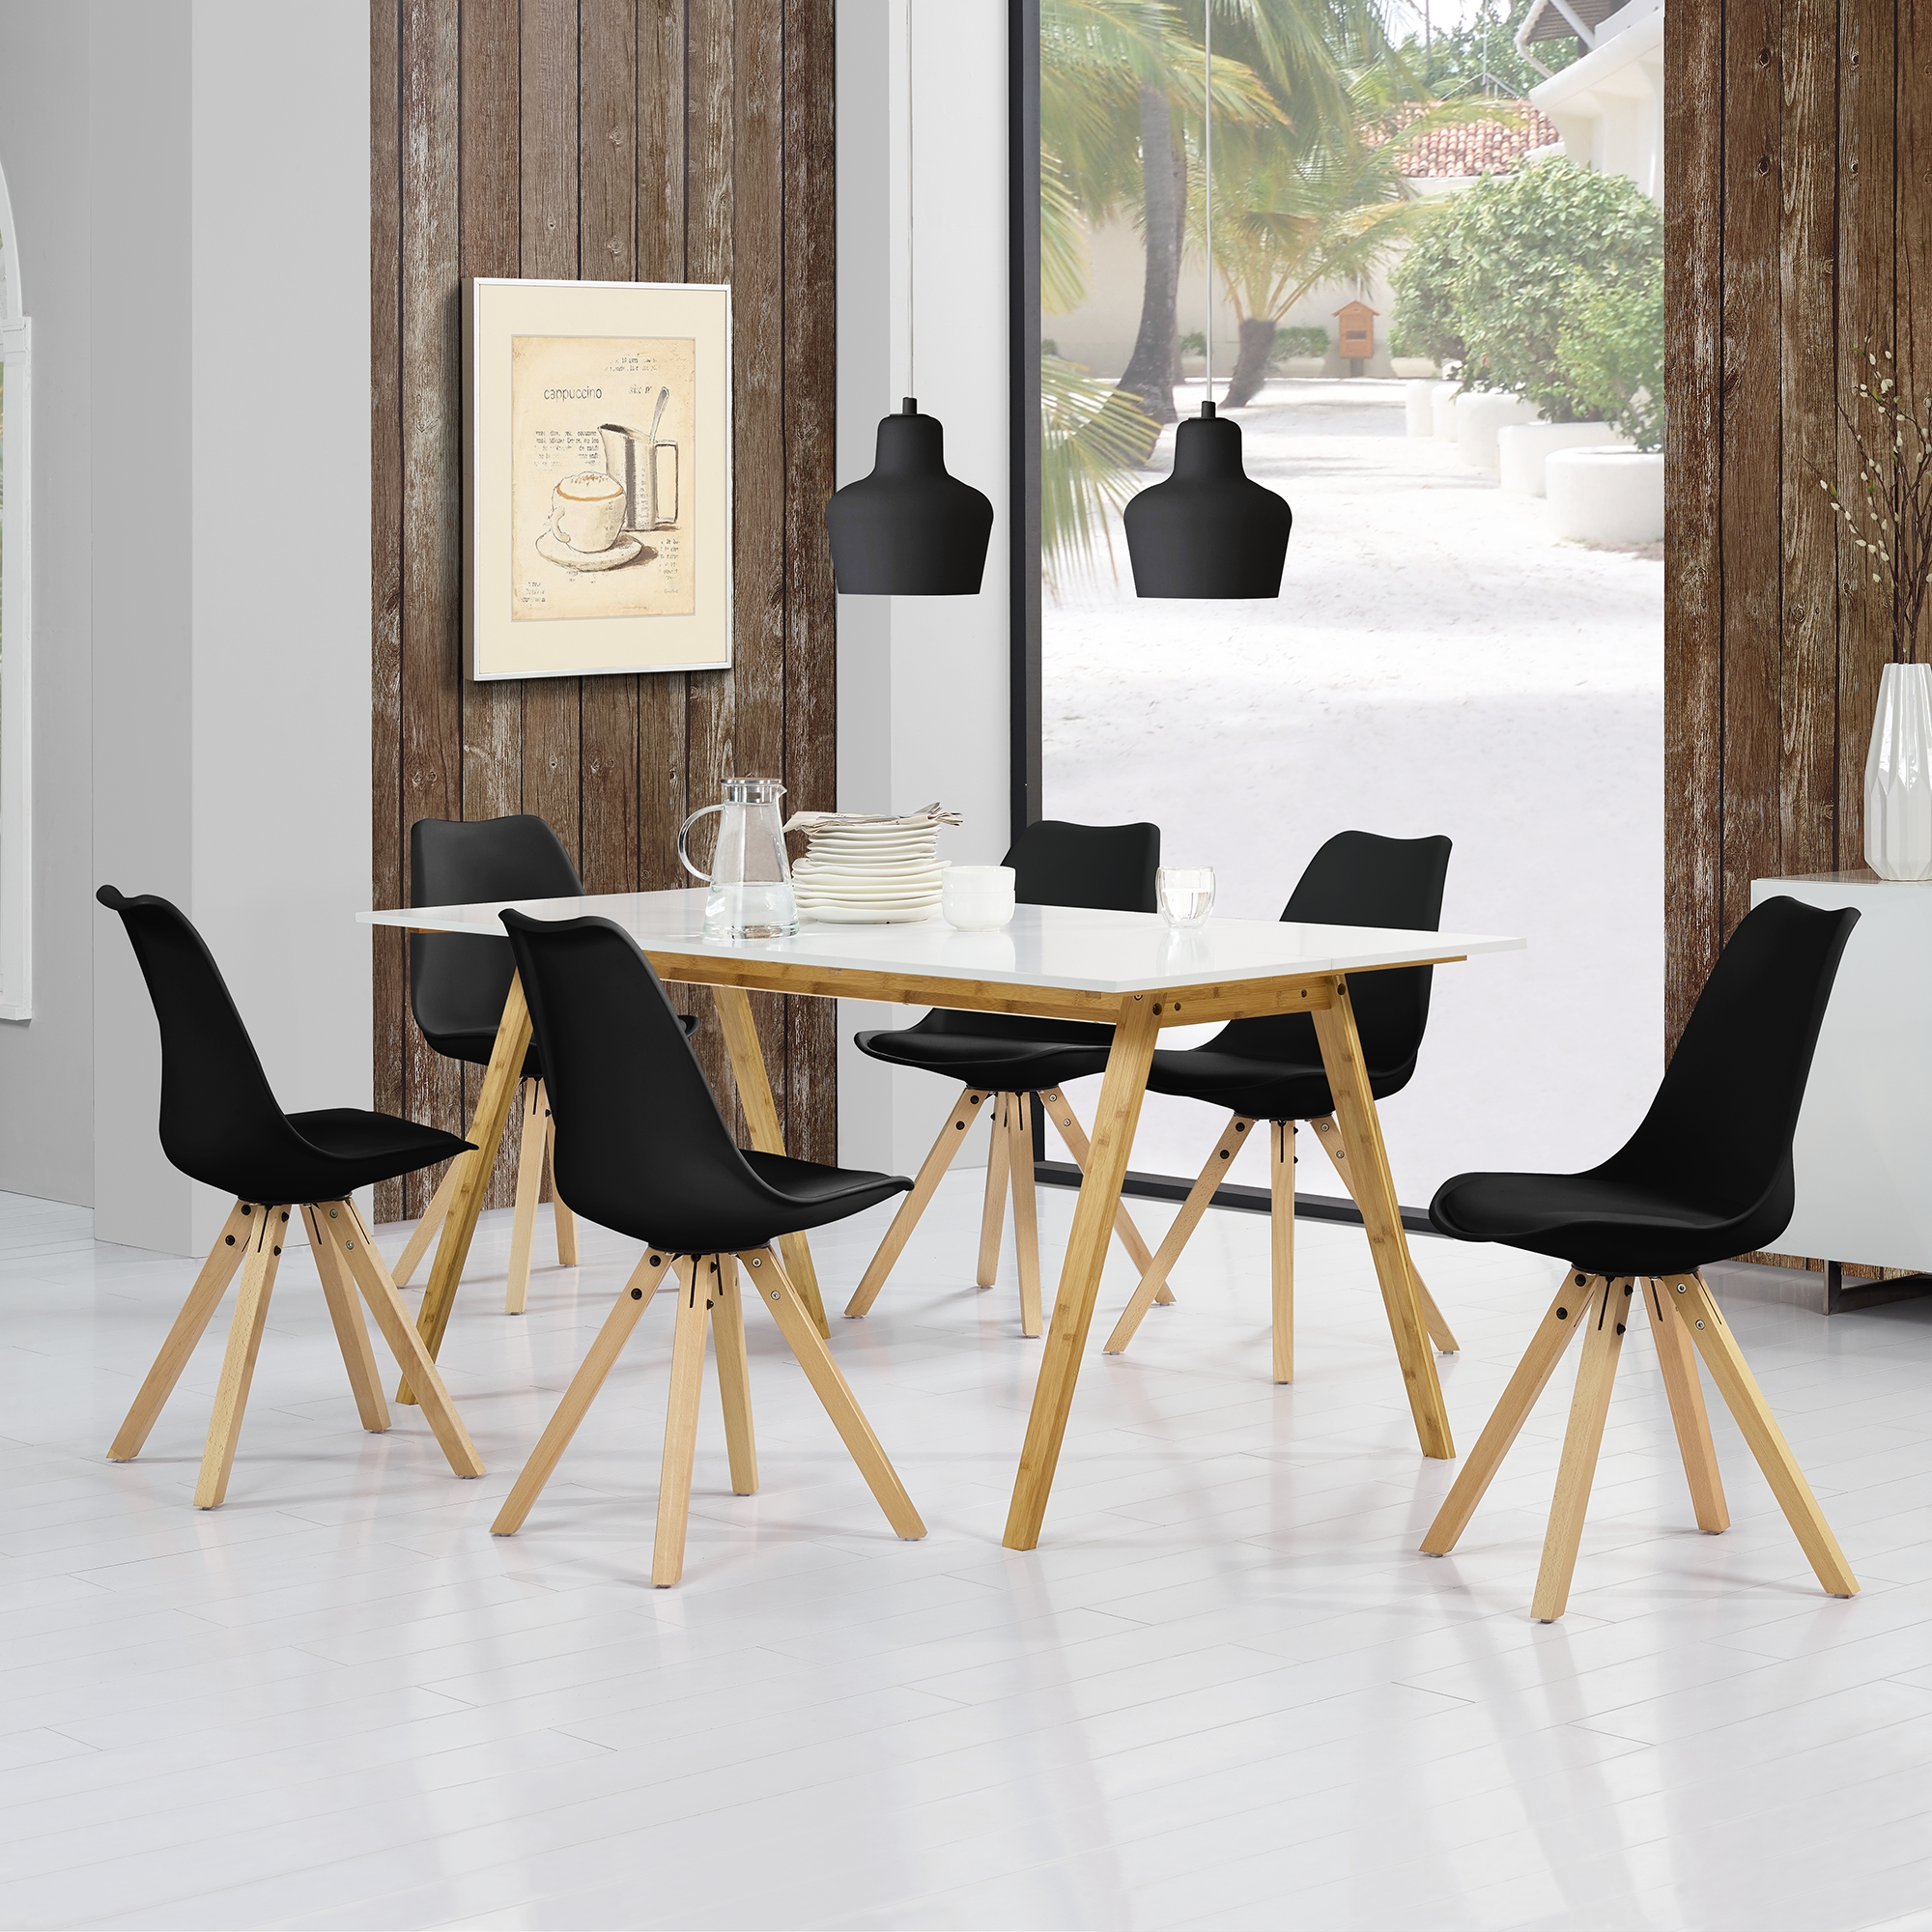 En casa dining table bamboo 180x80cm with 6 chairs padded black kitchen